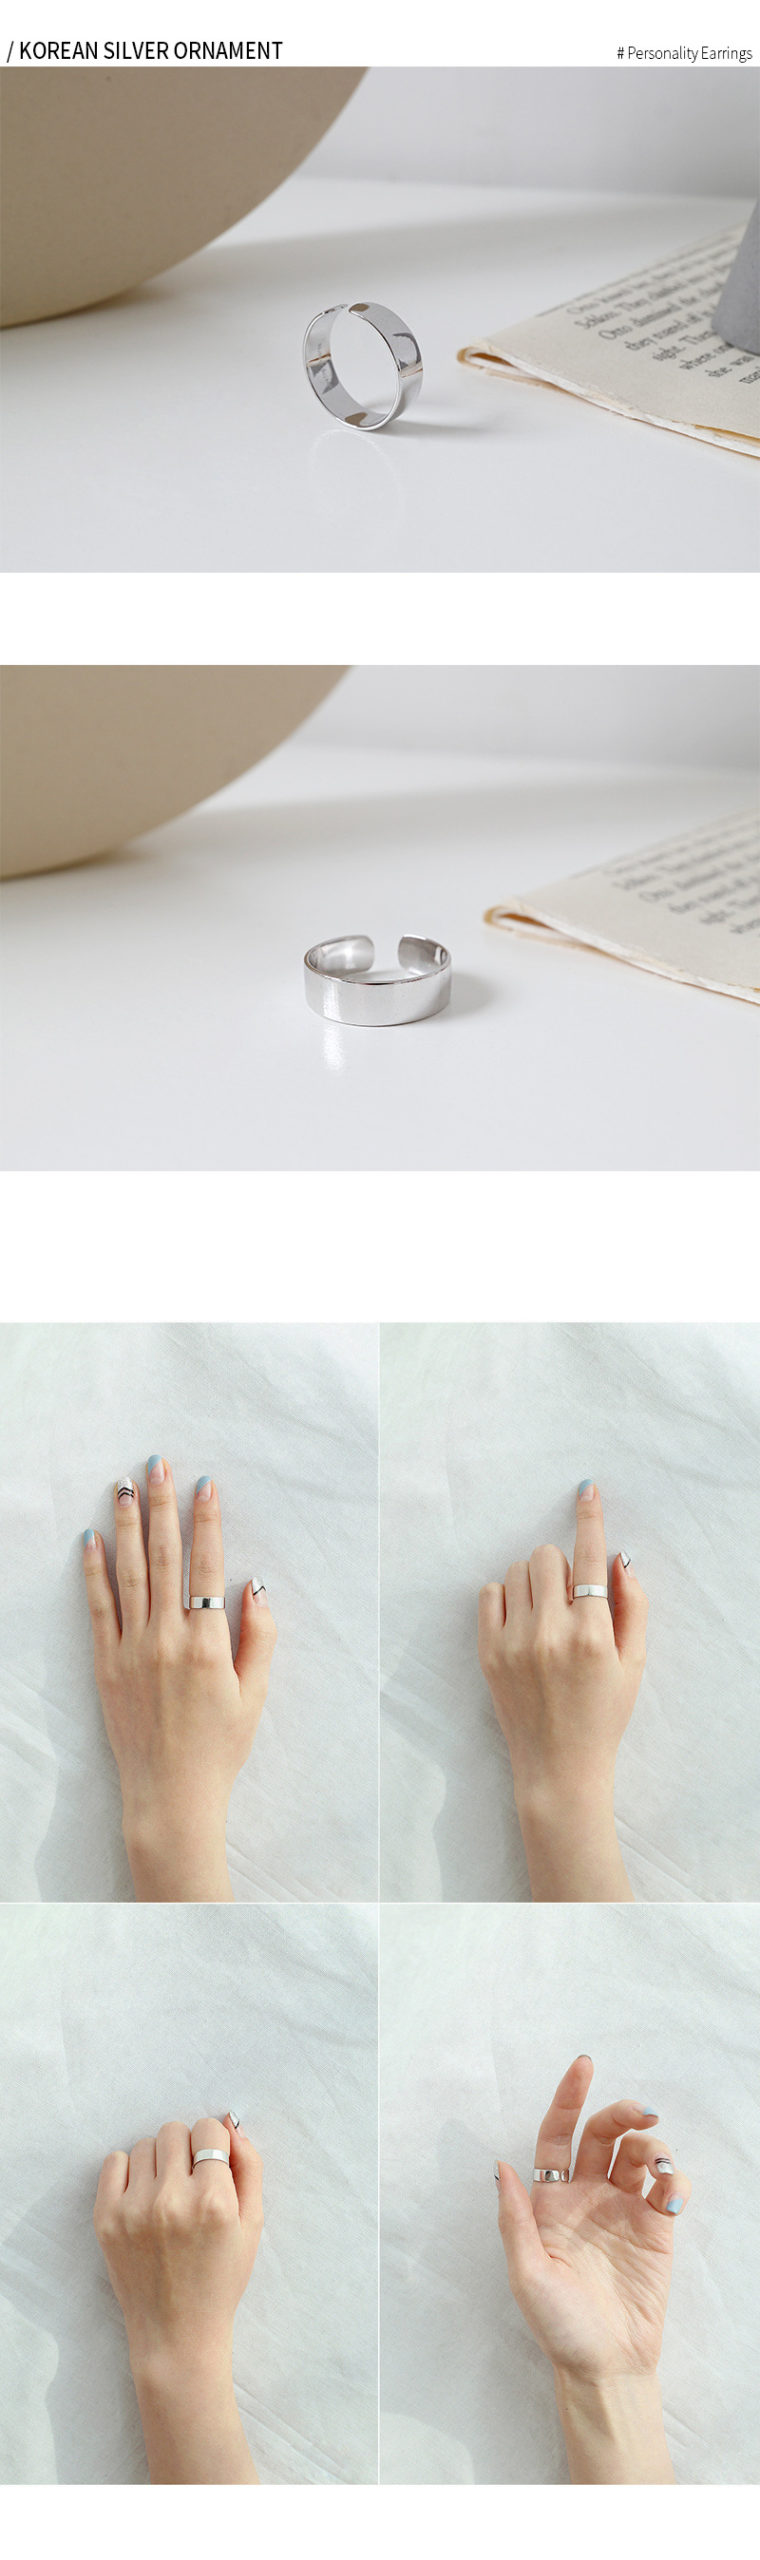 6MM 100% real. 925 SILVER Fine jewelry sterling Polished Wider Ring Women's high quality J14